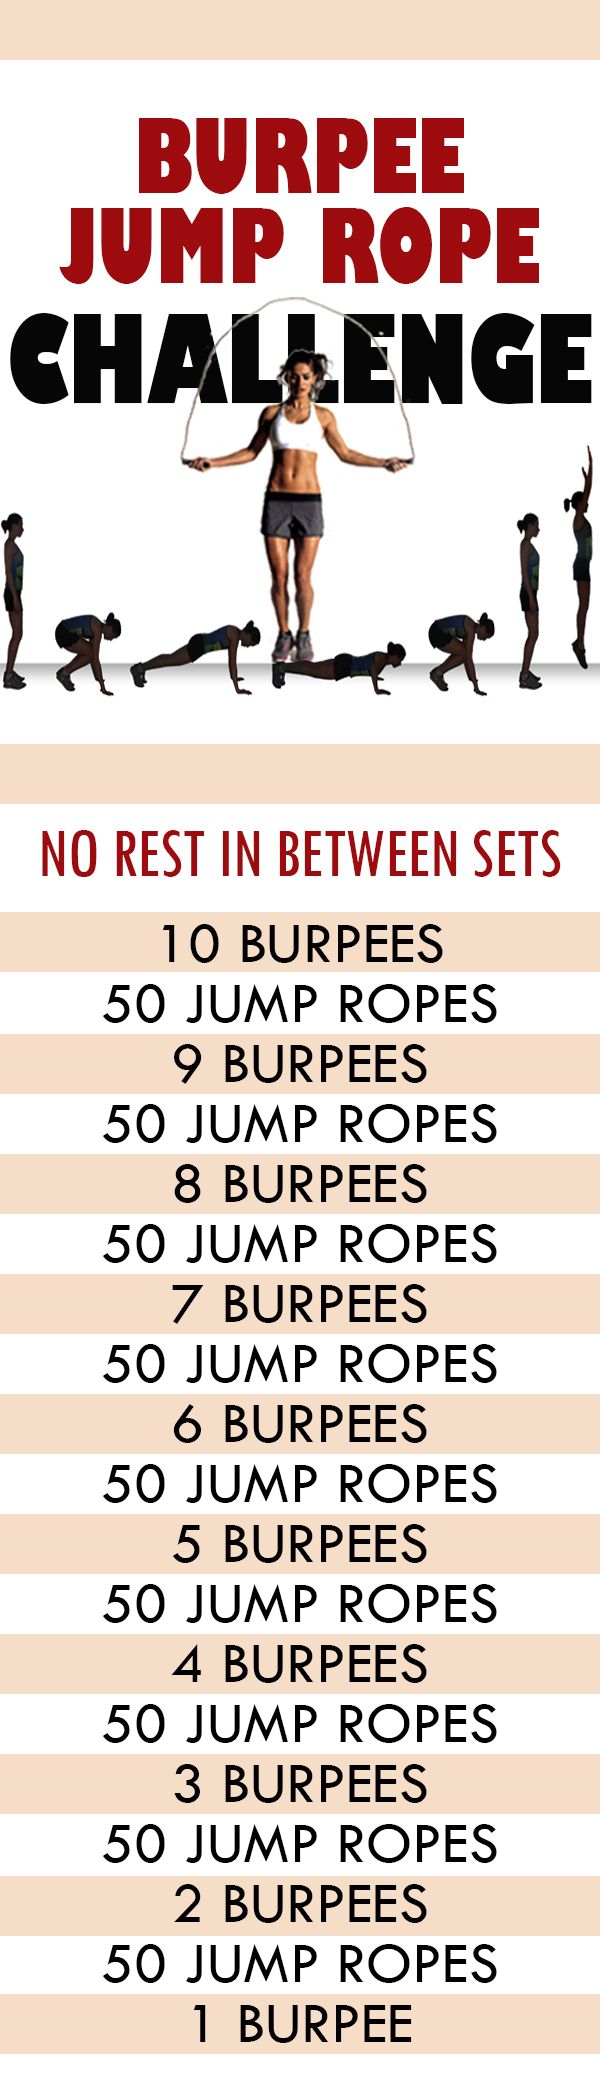 30 Minute Shoulder Sculpting Workout Burpee Jump Rope Challenge Back Busting Workout Full Body Bench Press Whole Jump Rope 30 Day Push Up Burpee Challenge